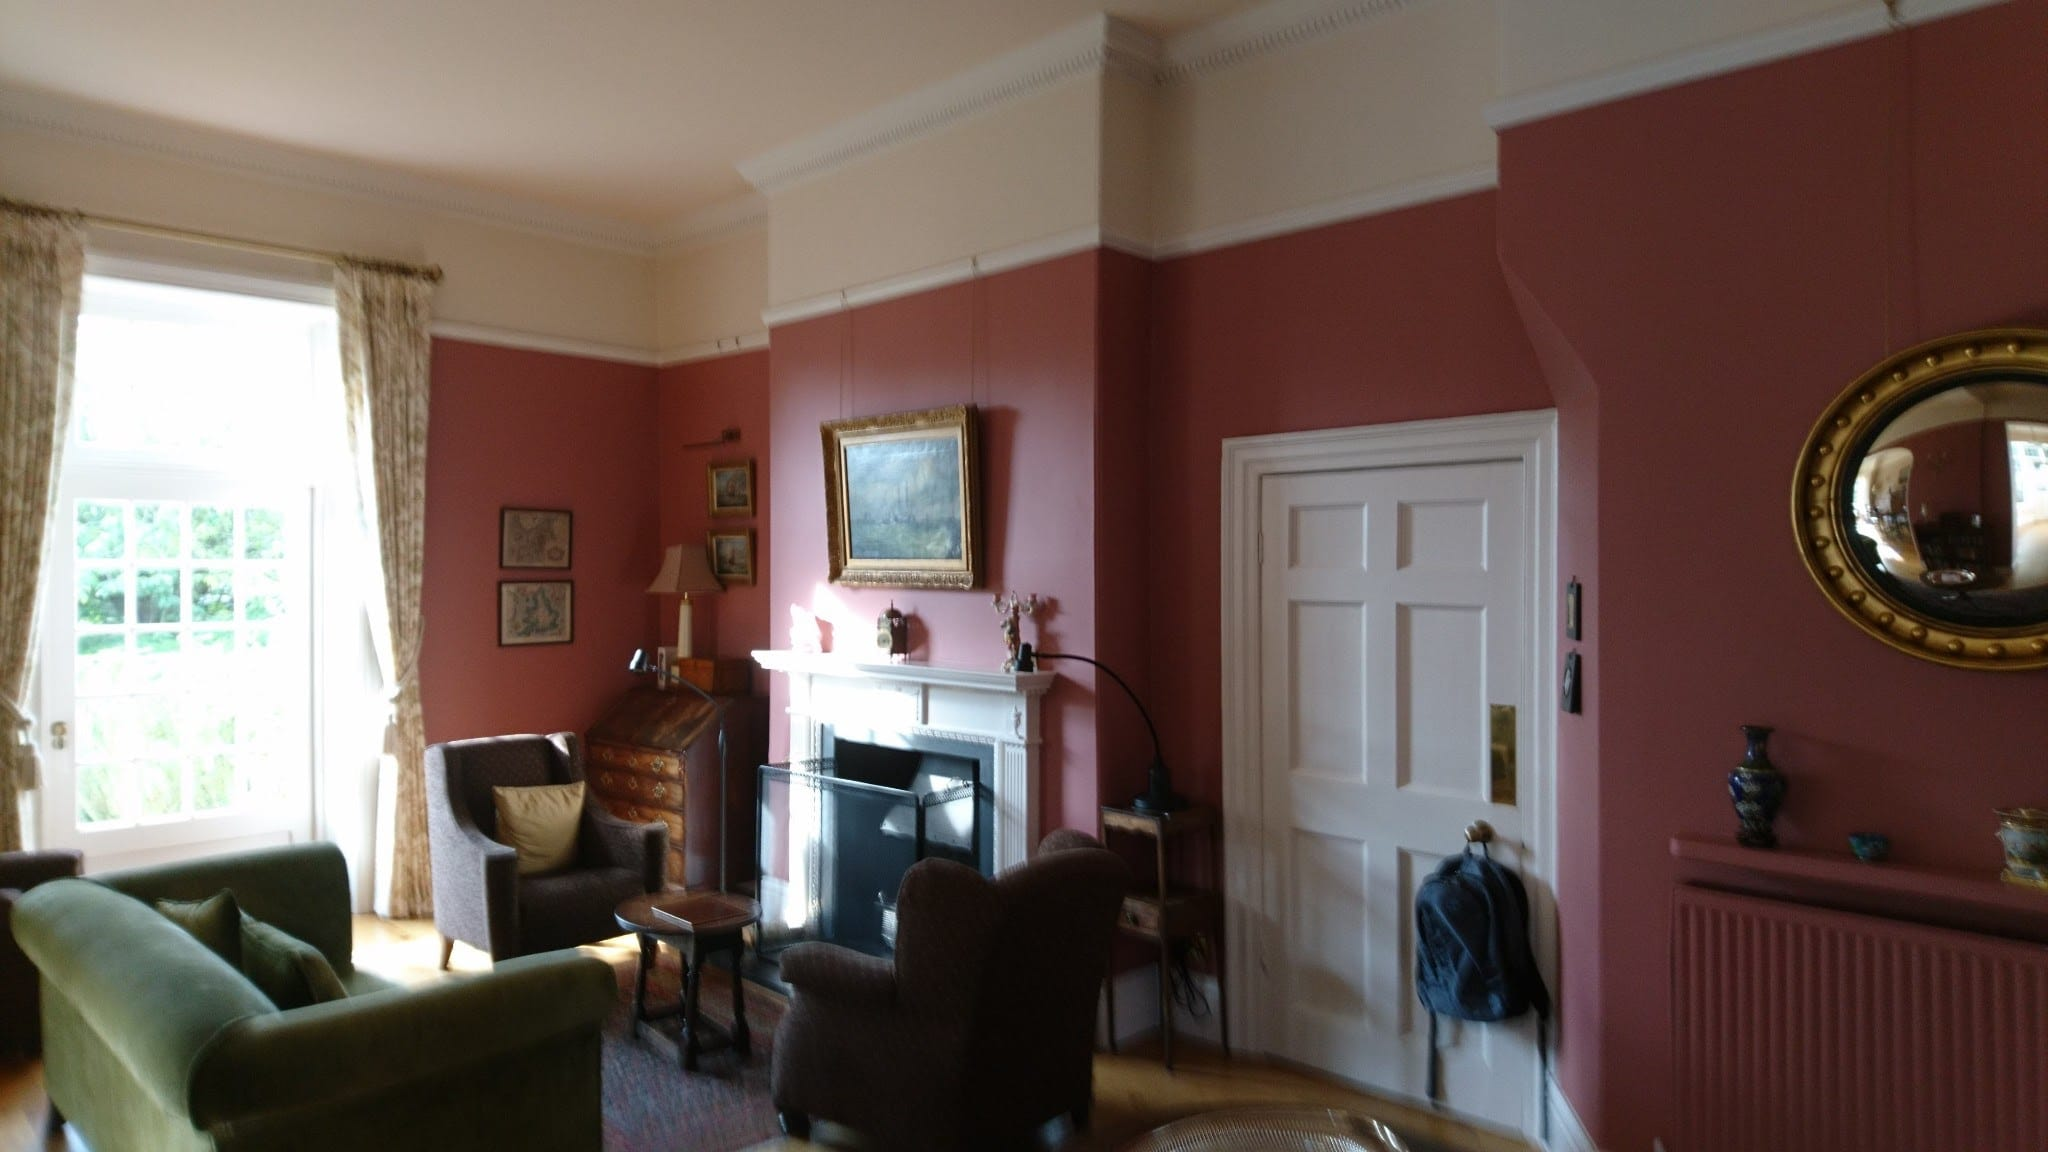 Chris Green and Son Painters and Decorators